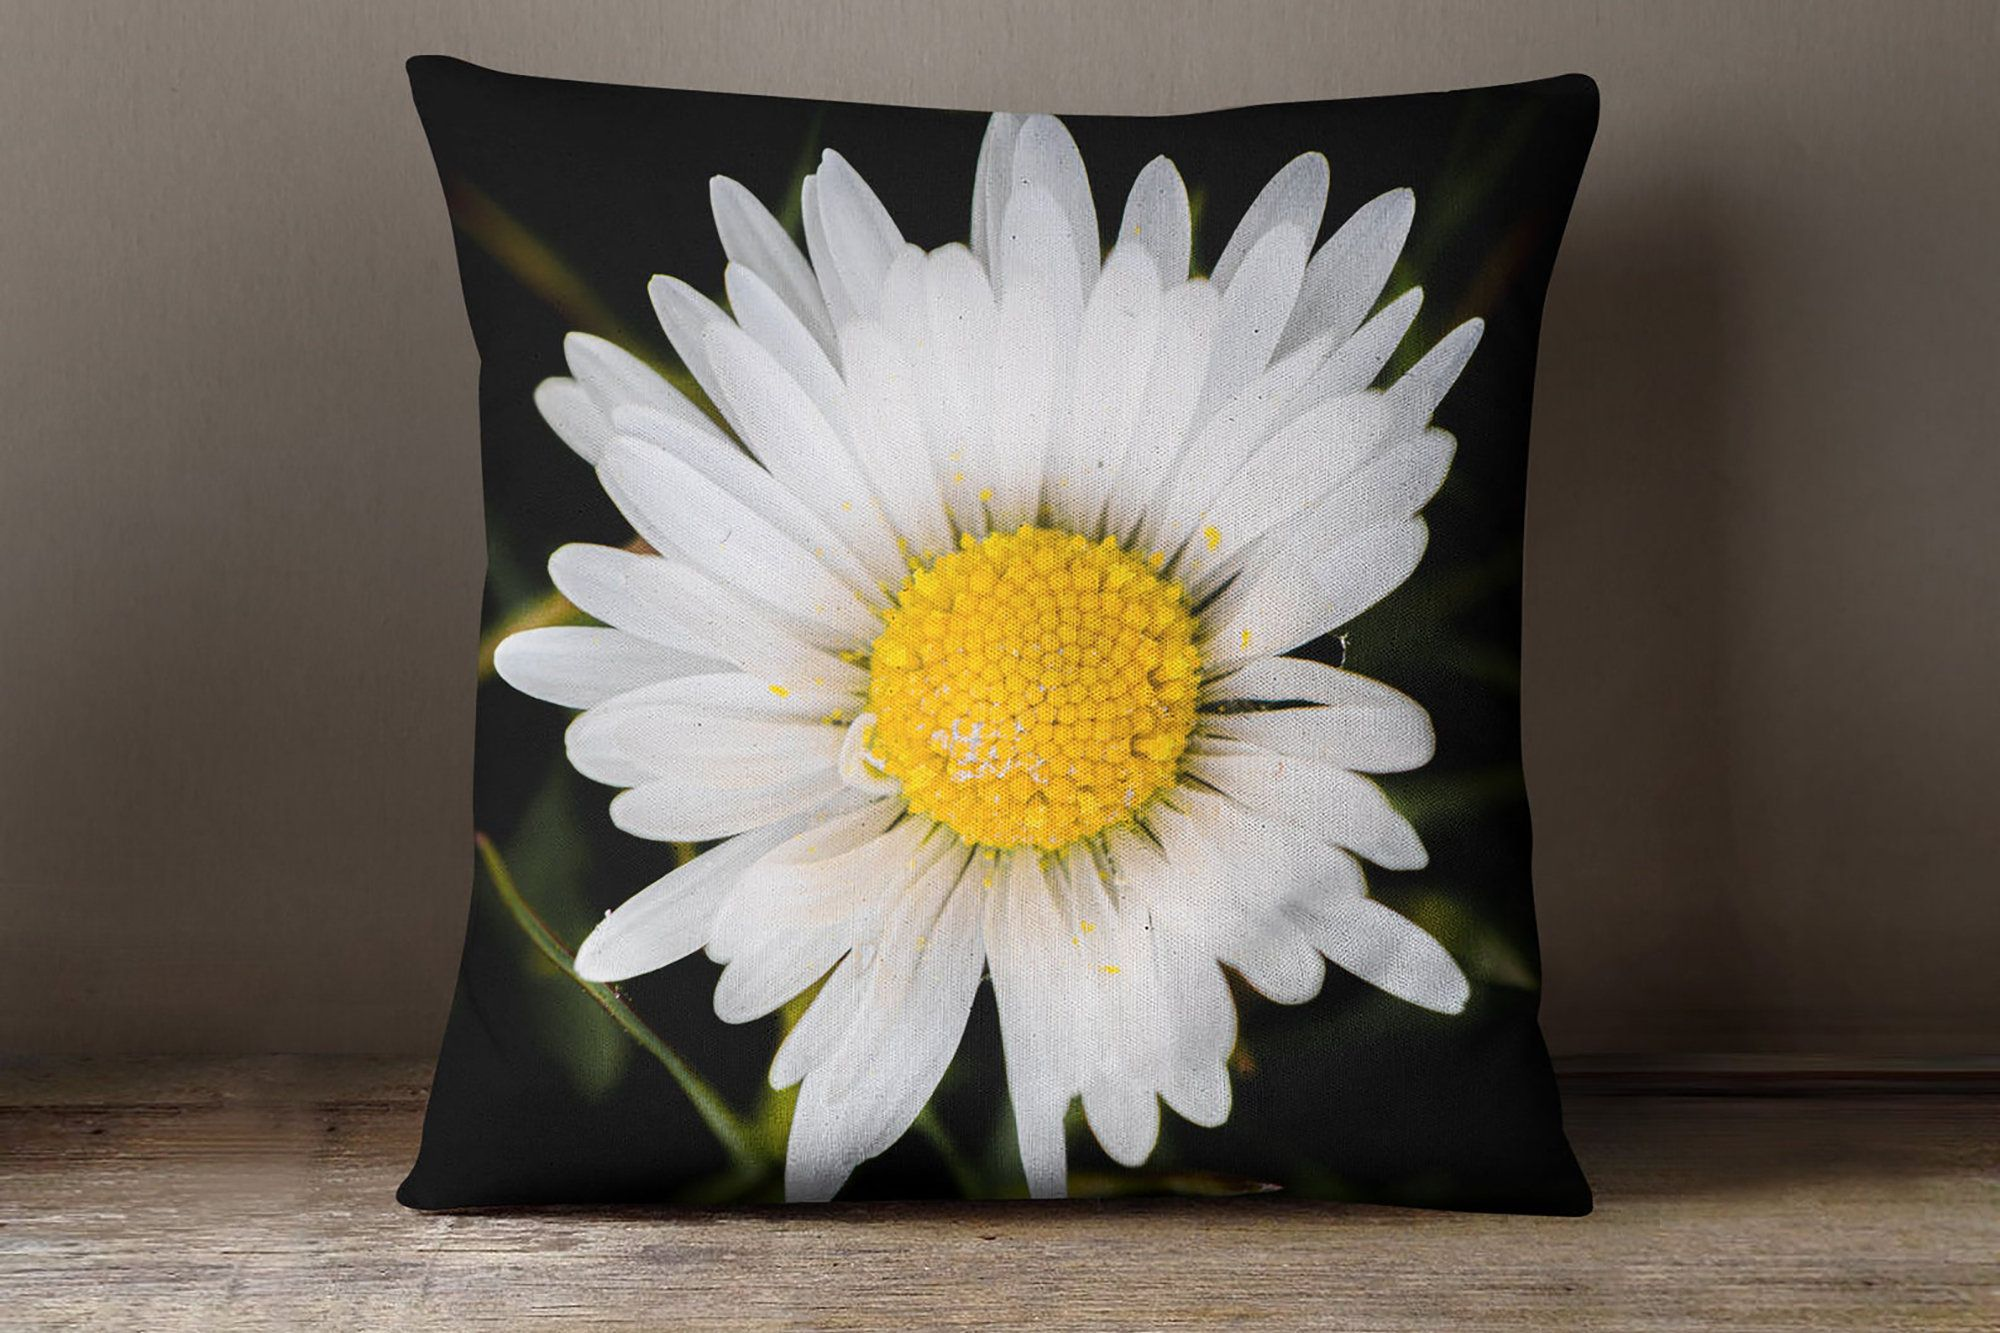 Daisy Decorative Pillow Throw Pillow Covers Floral Pillow Etsy In 2021 Daisy Pillows Floral Pillows Pillow Covers